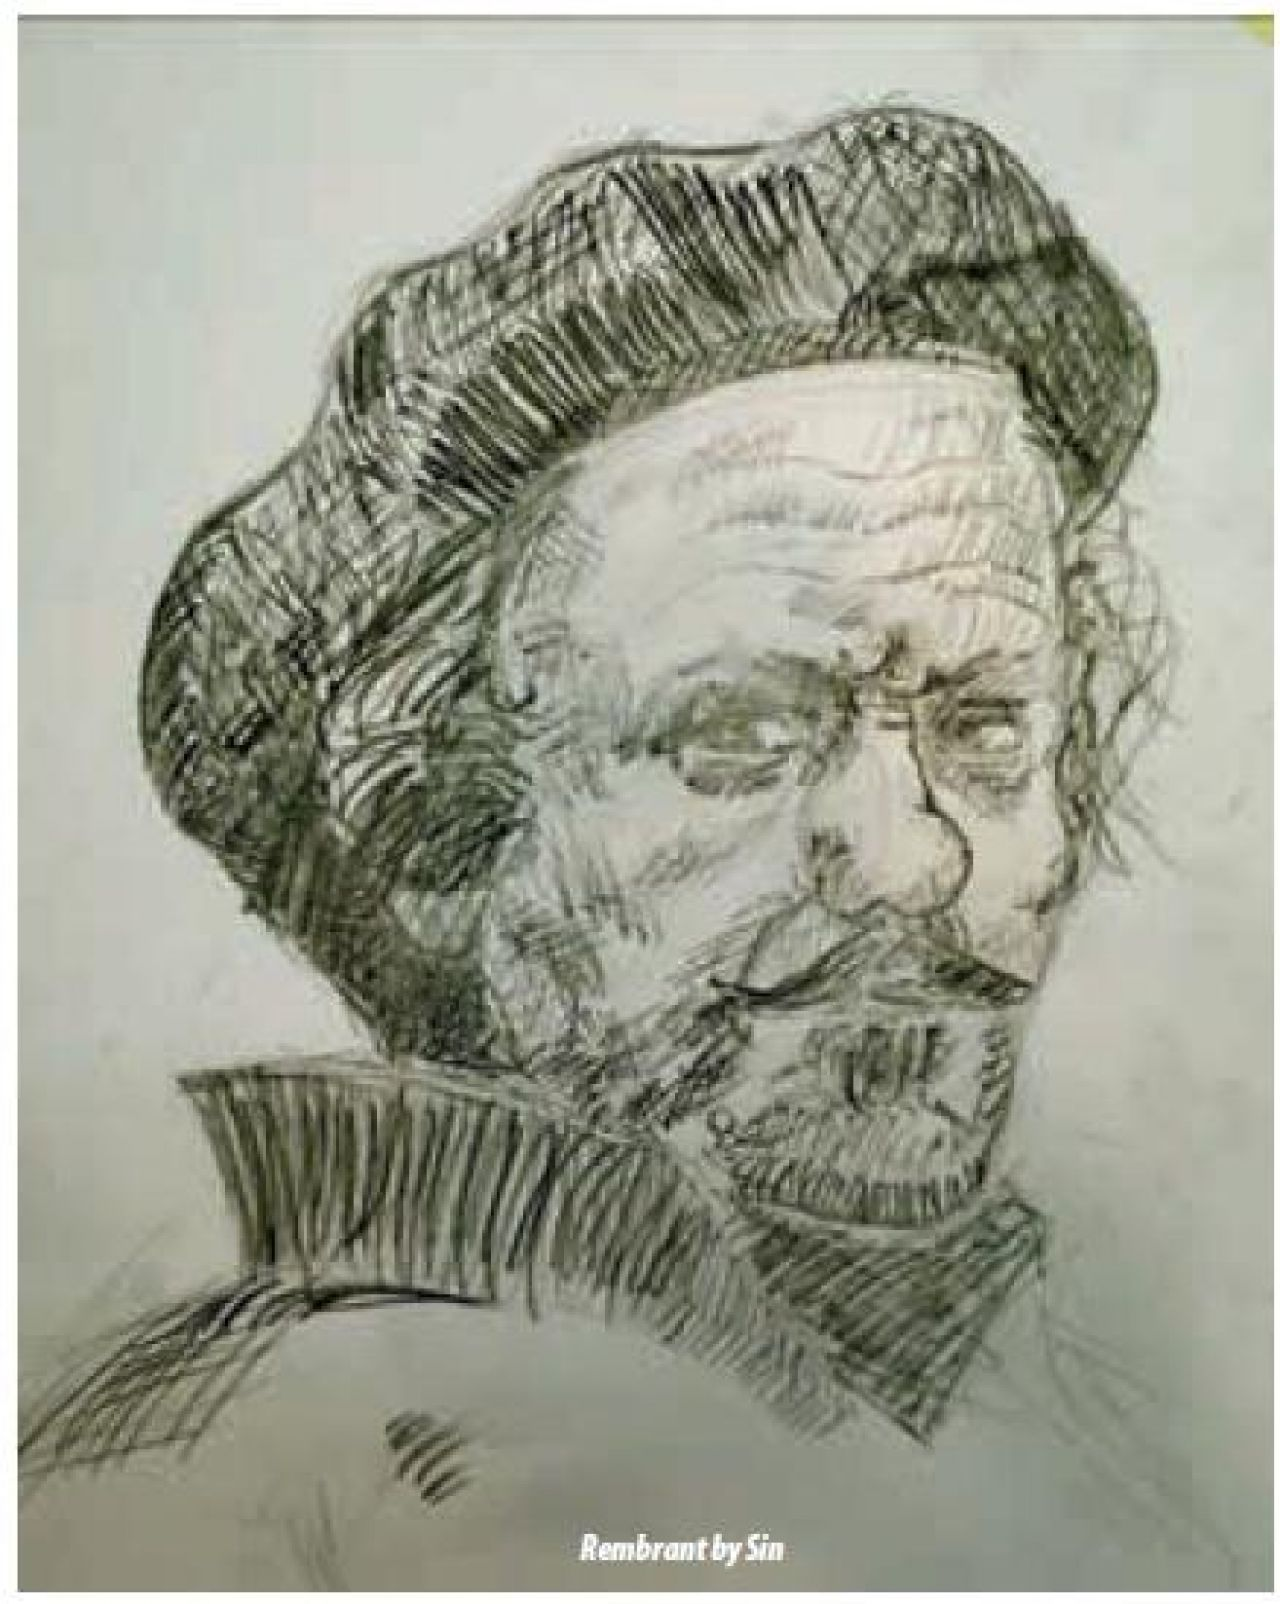 rembrant-by-sin_1.jpg